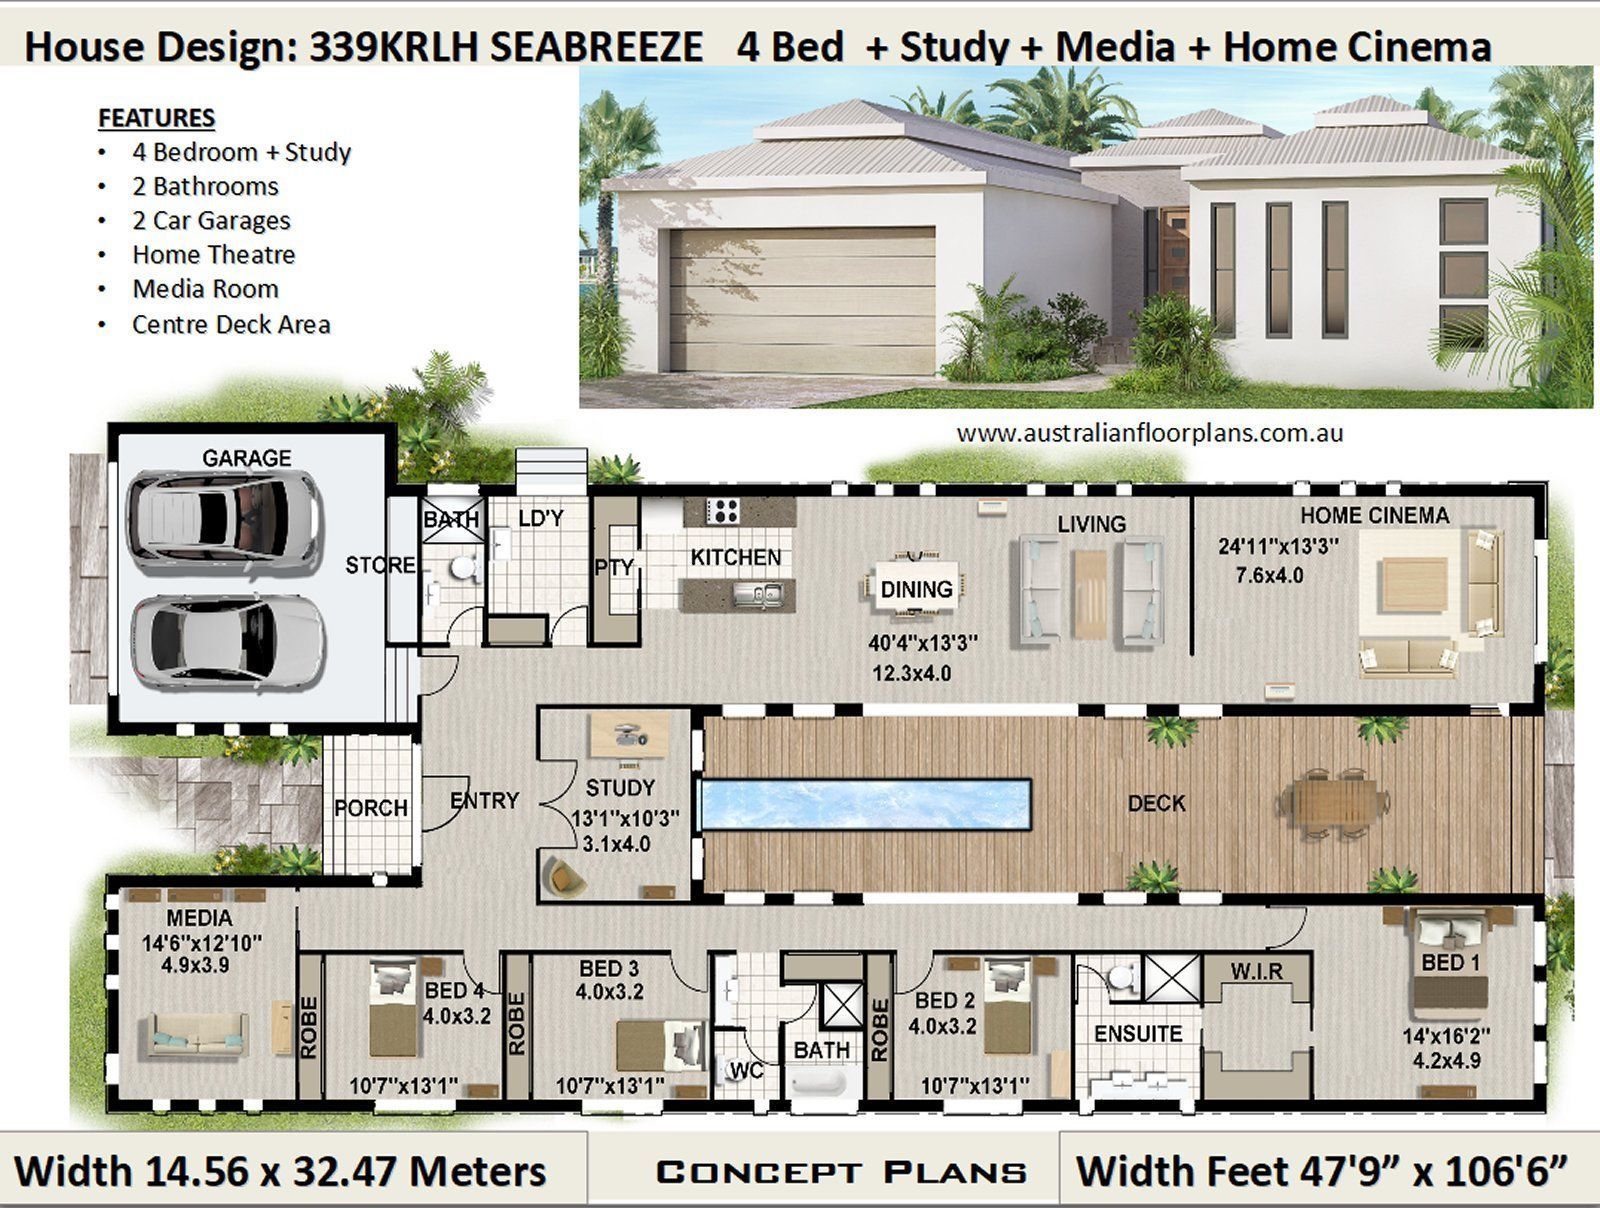 418m2 4503 Sq Foot 5 Bedflat 4 Plus Study Home Design Etsy Courtyard House Plans Bedroom House Plans Container House Plans